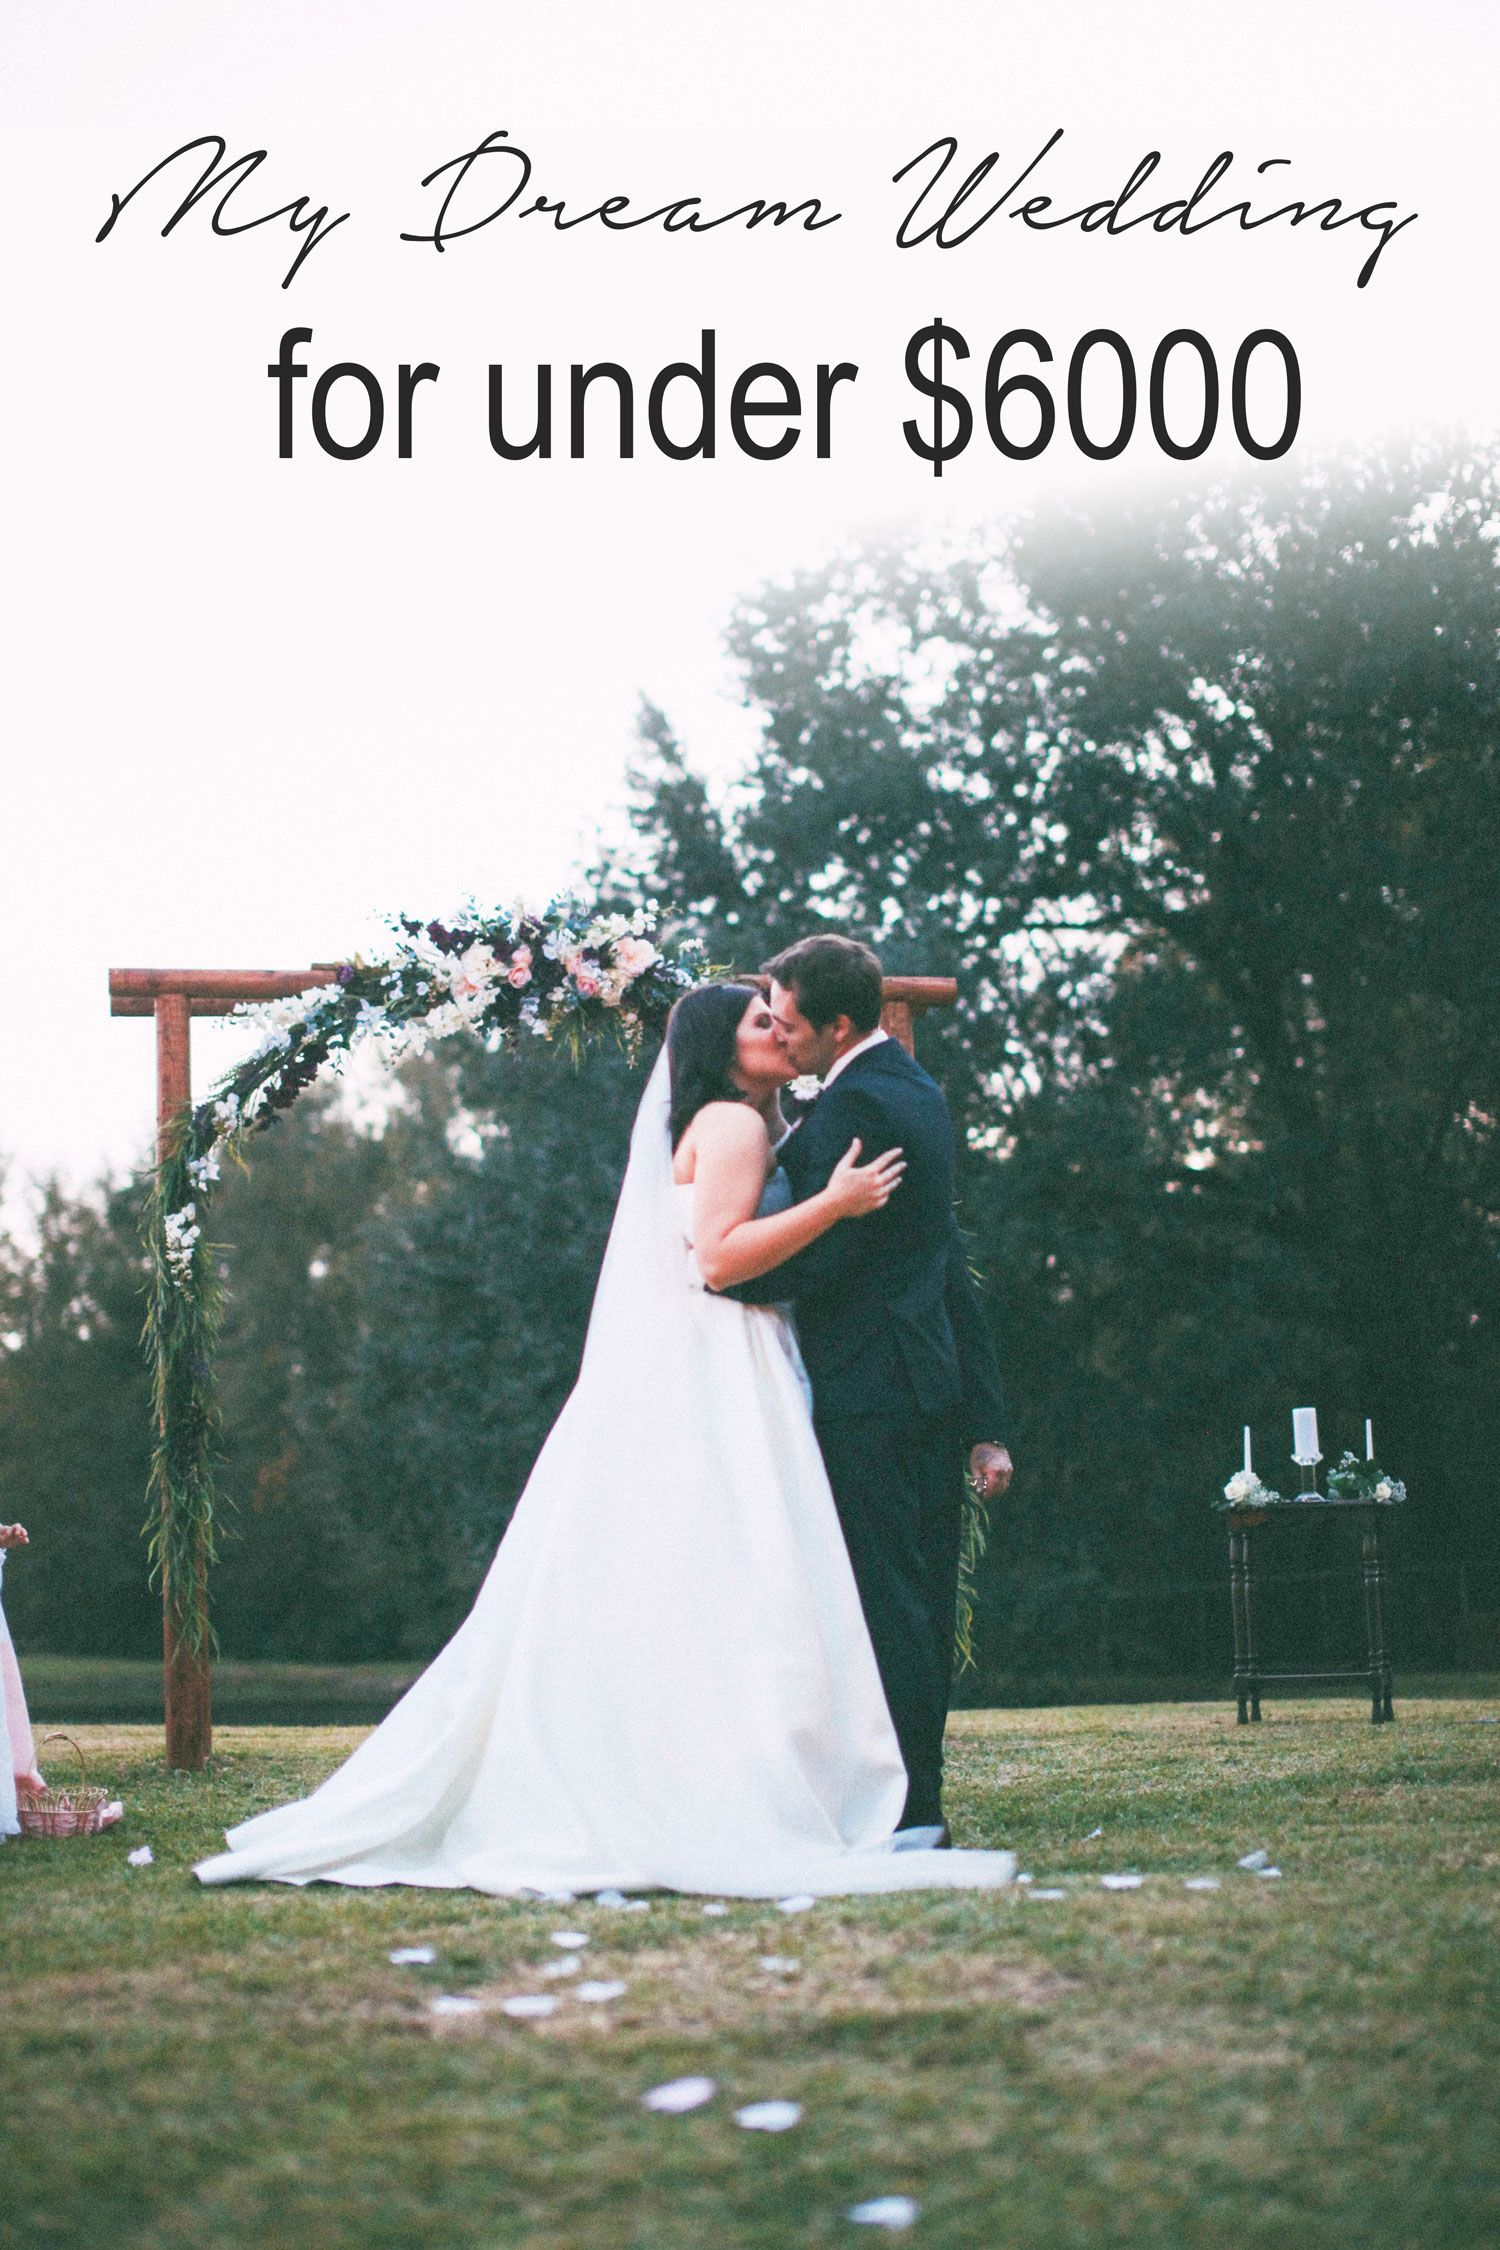 My Dream Wedding for Under $6000 - Kassy On Design